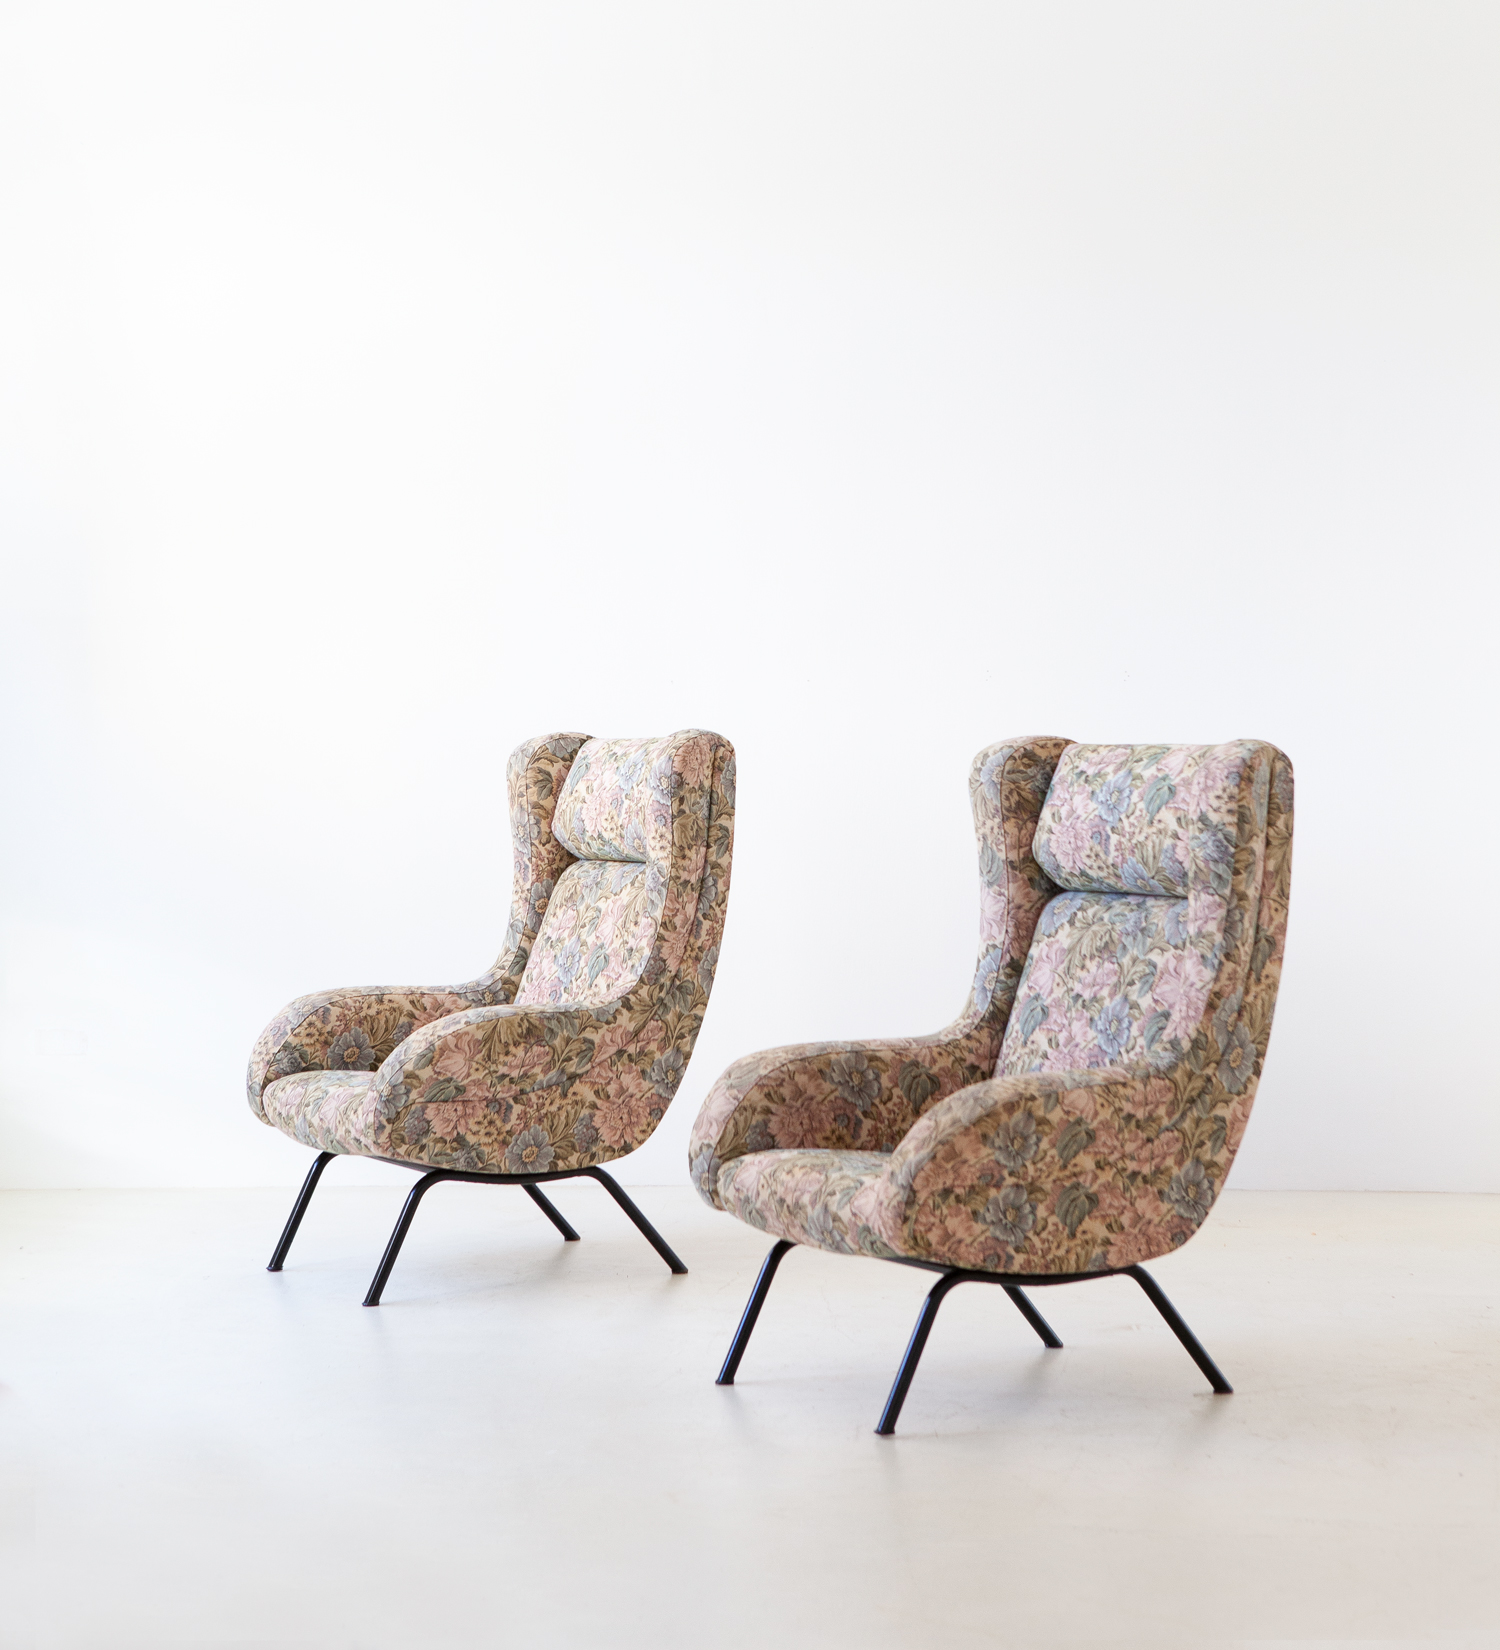 pair-of-italian-lounge-armchairs-with-ears-4-se326